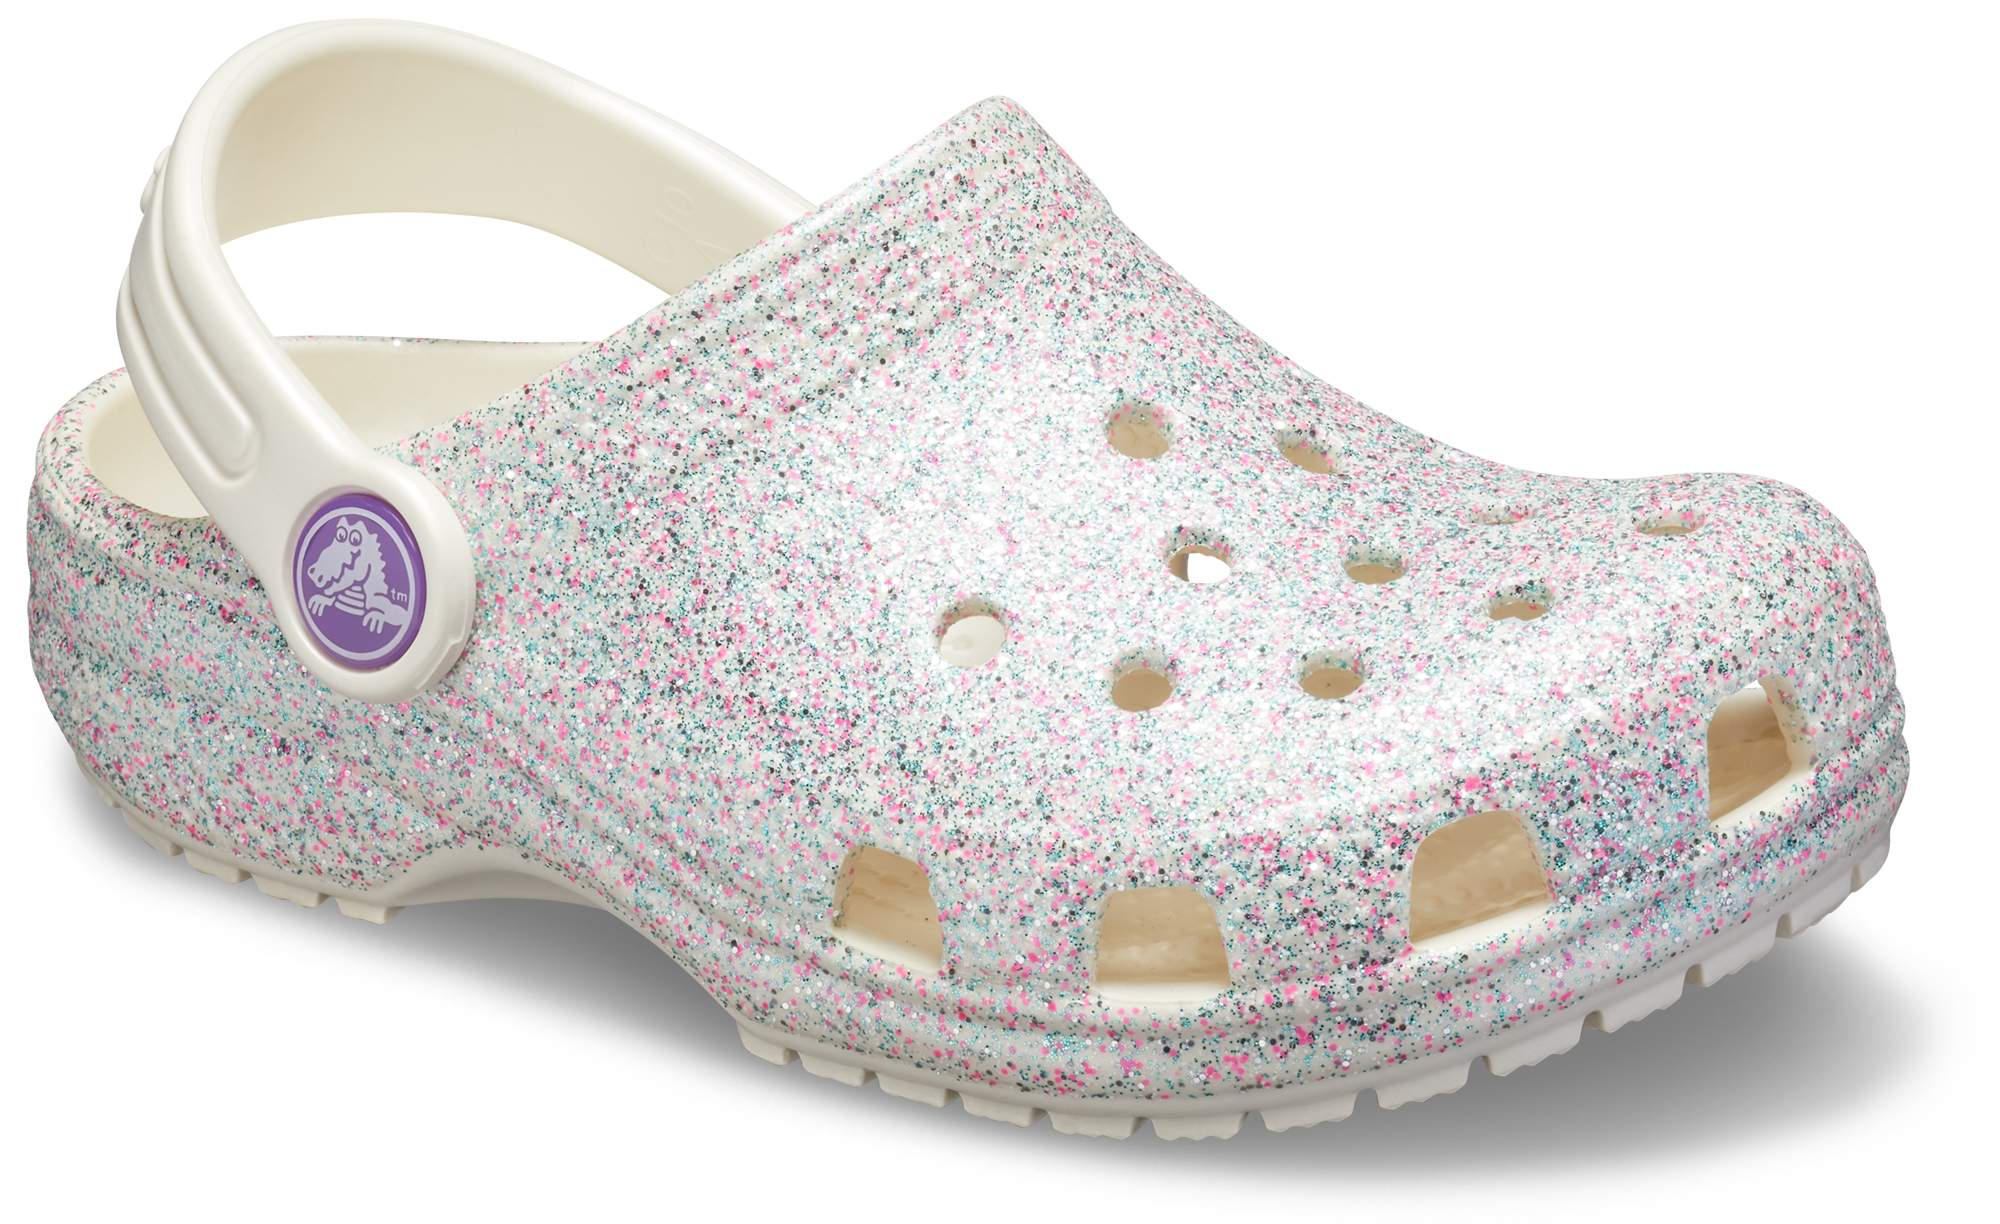 Crocs Kids Crocband Sequin Band Clog 13 M US Little Kid Barely Pink